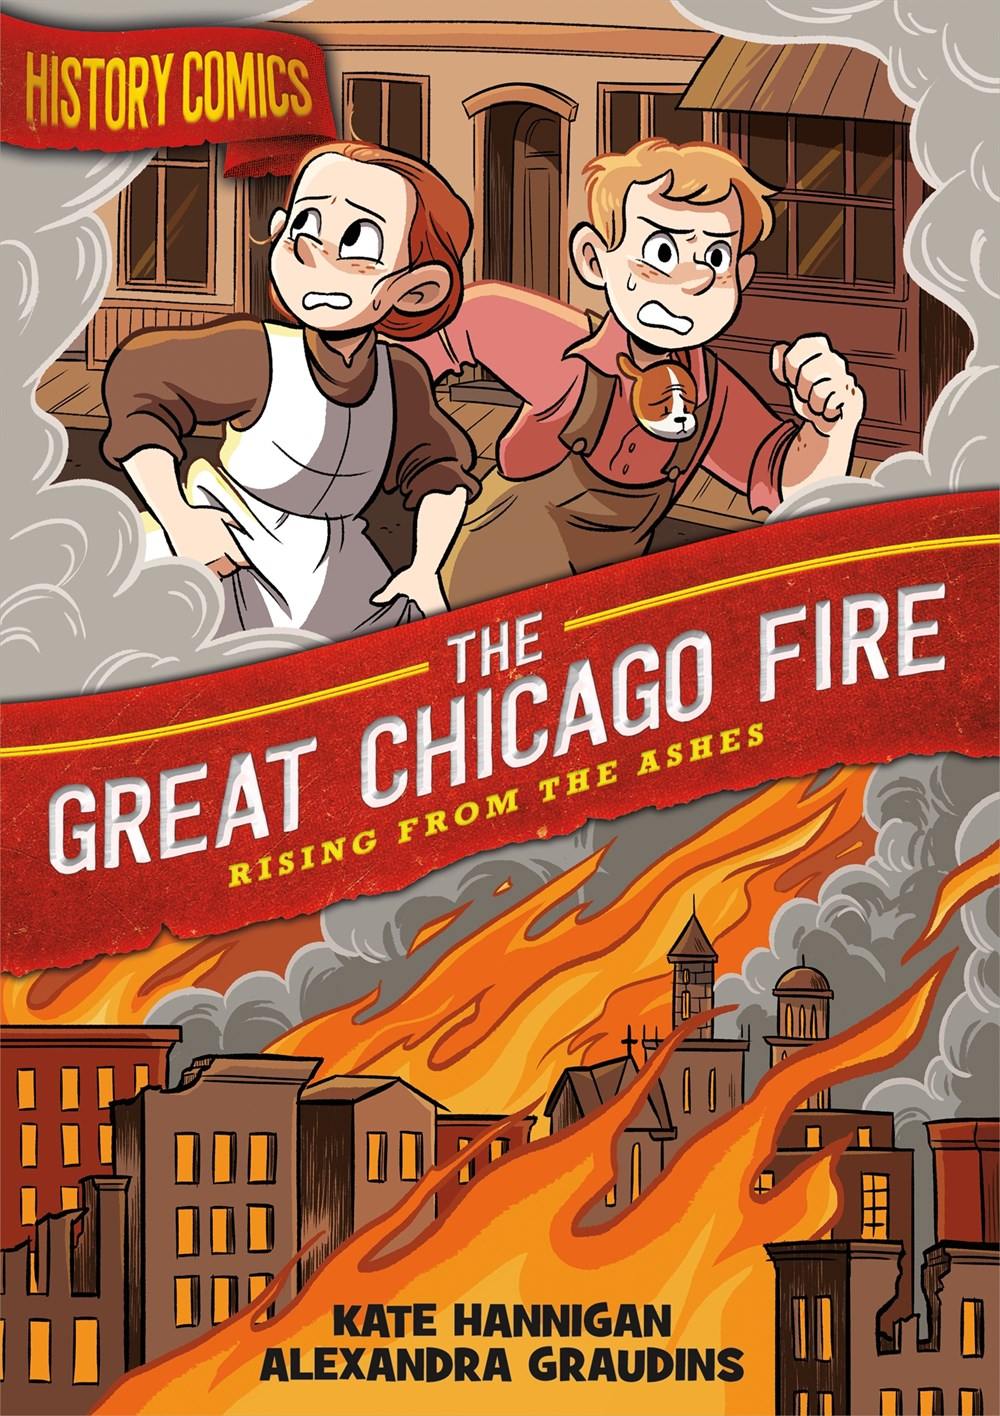 https://illinois.scbwi.org/wp-admin/admin-ajax.php?action=cfdb-file&s=1586829321.1513&form=2020+Virtual+Book+Launch&field=newest-book-cover